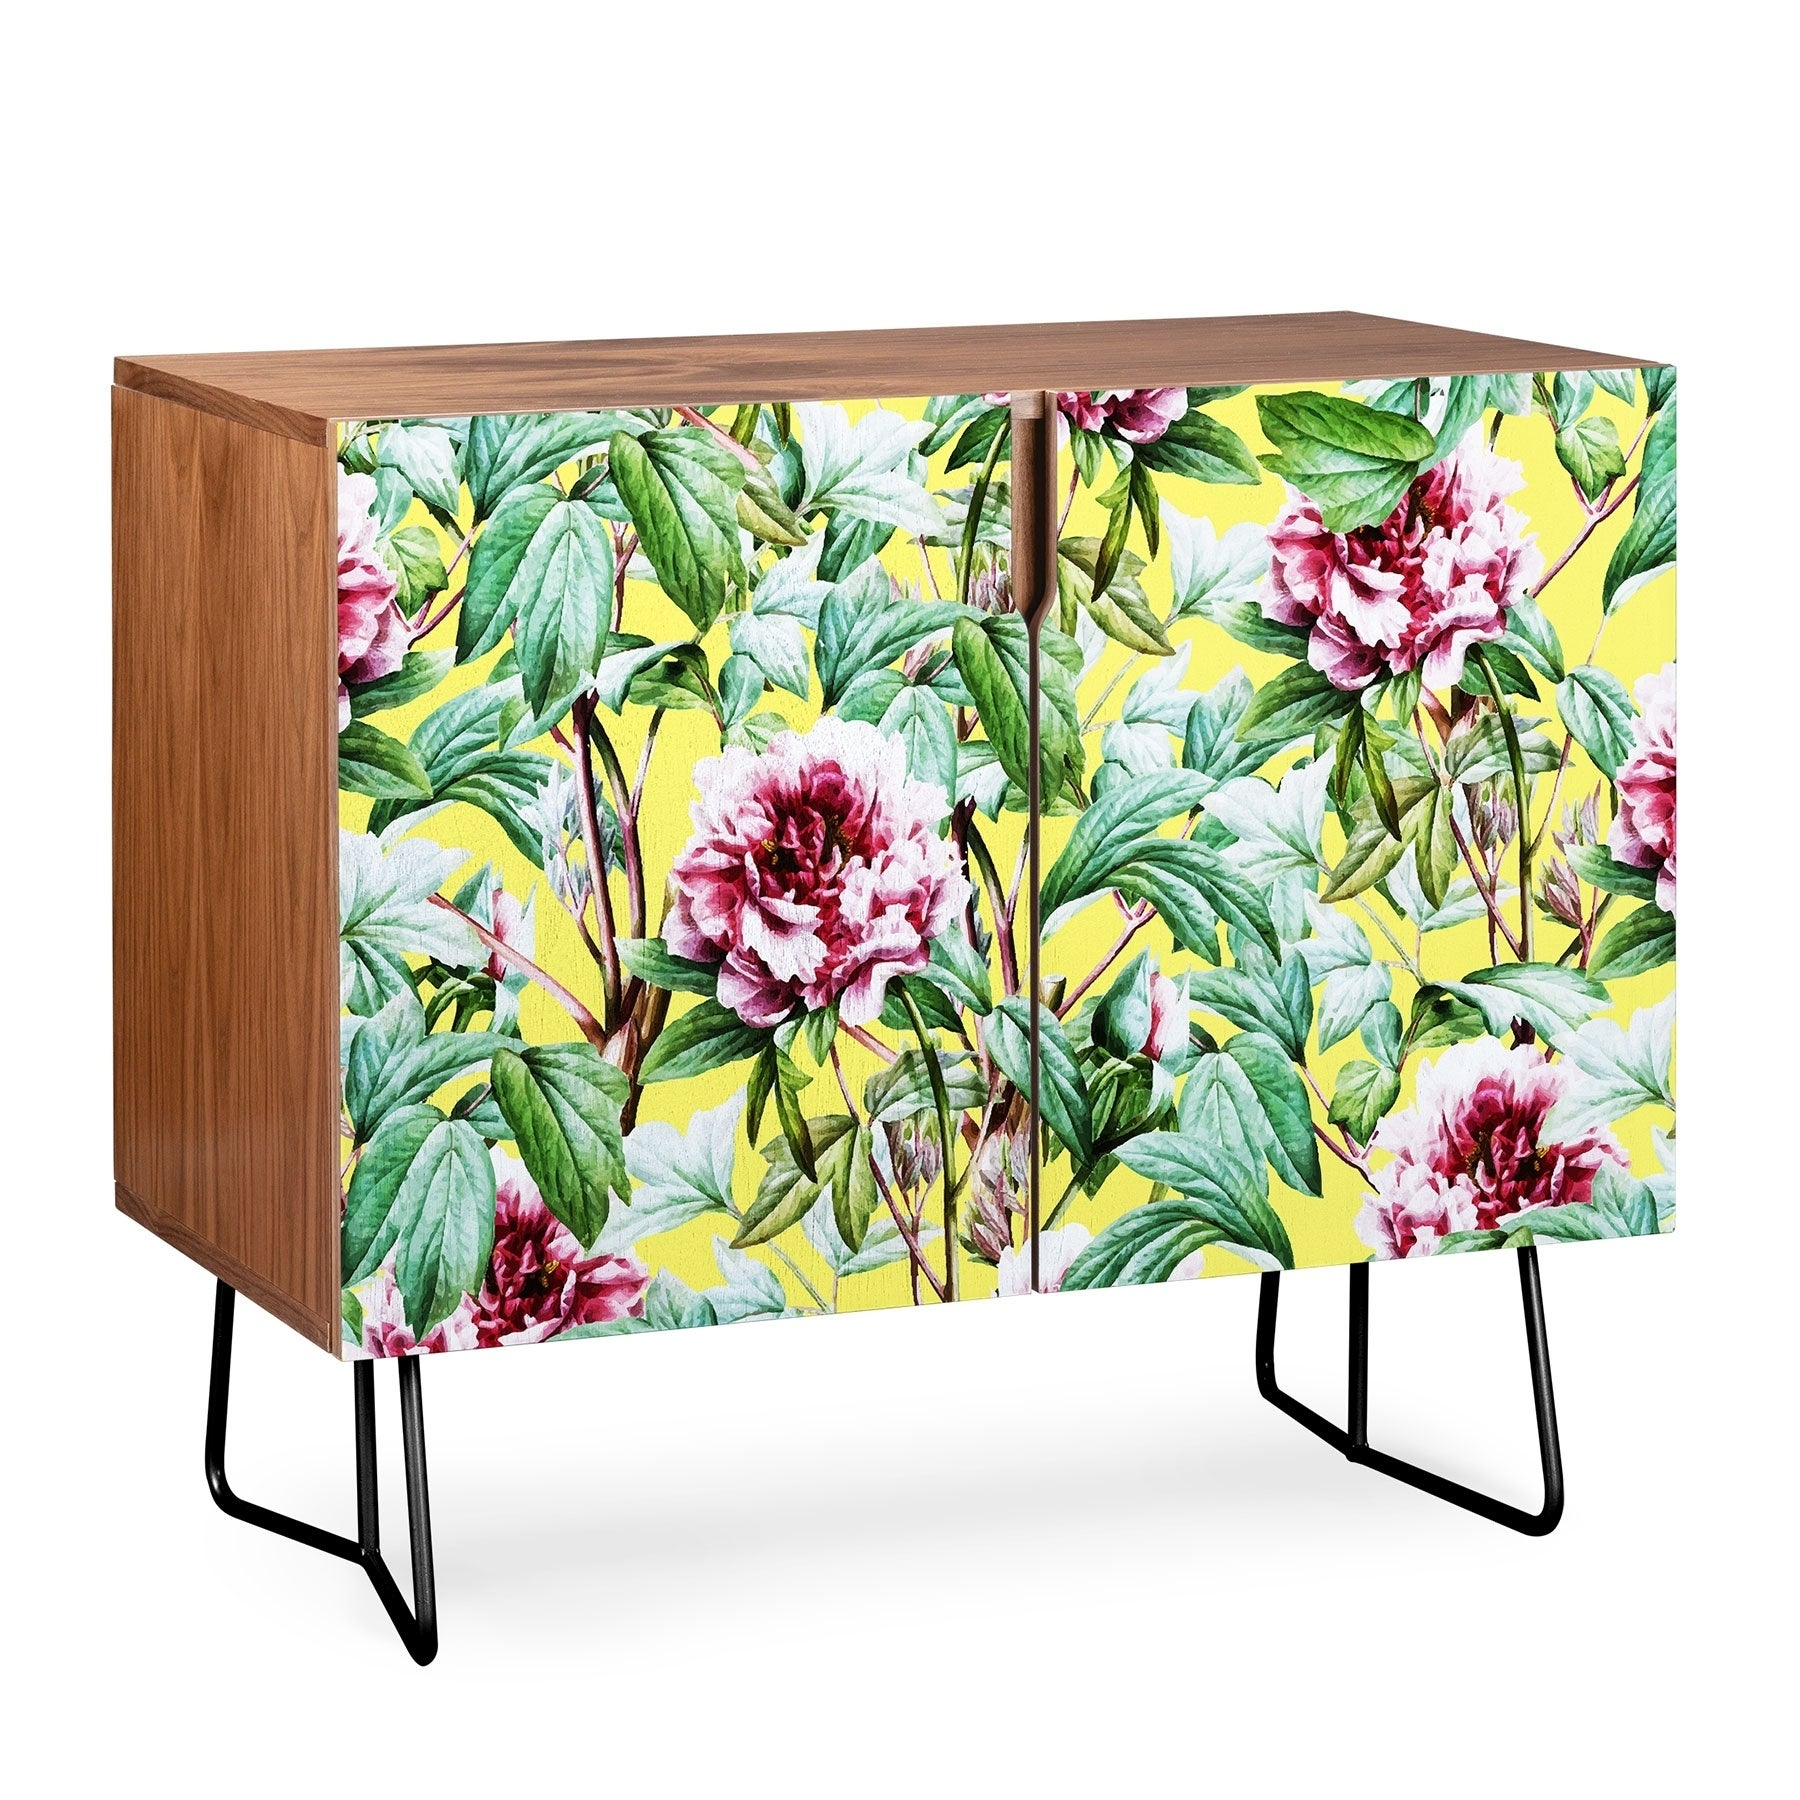 Deny Designs Yellow Flora Credenza (Birch Or Walnut, 2 Leg Options) Within Yellow Flora Credenzas (Photo 1 of 30)